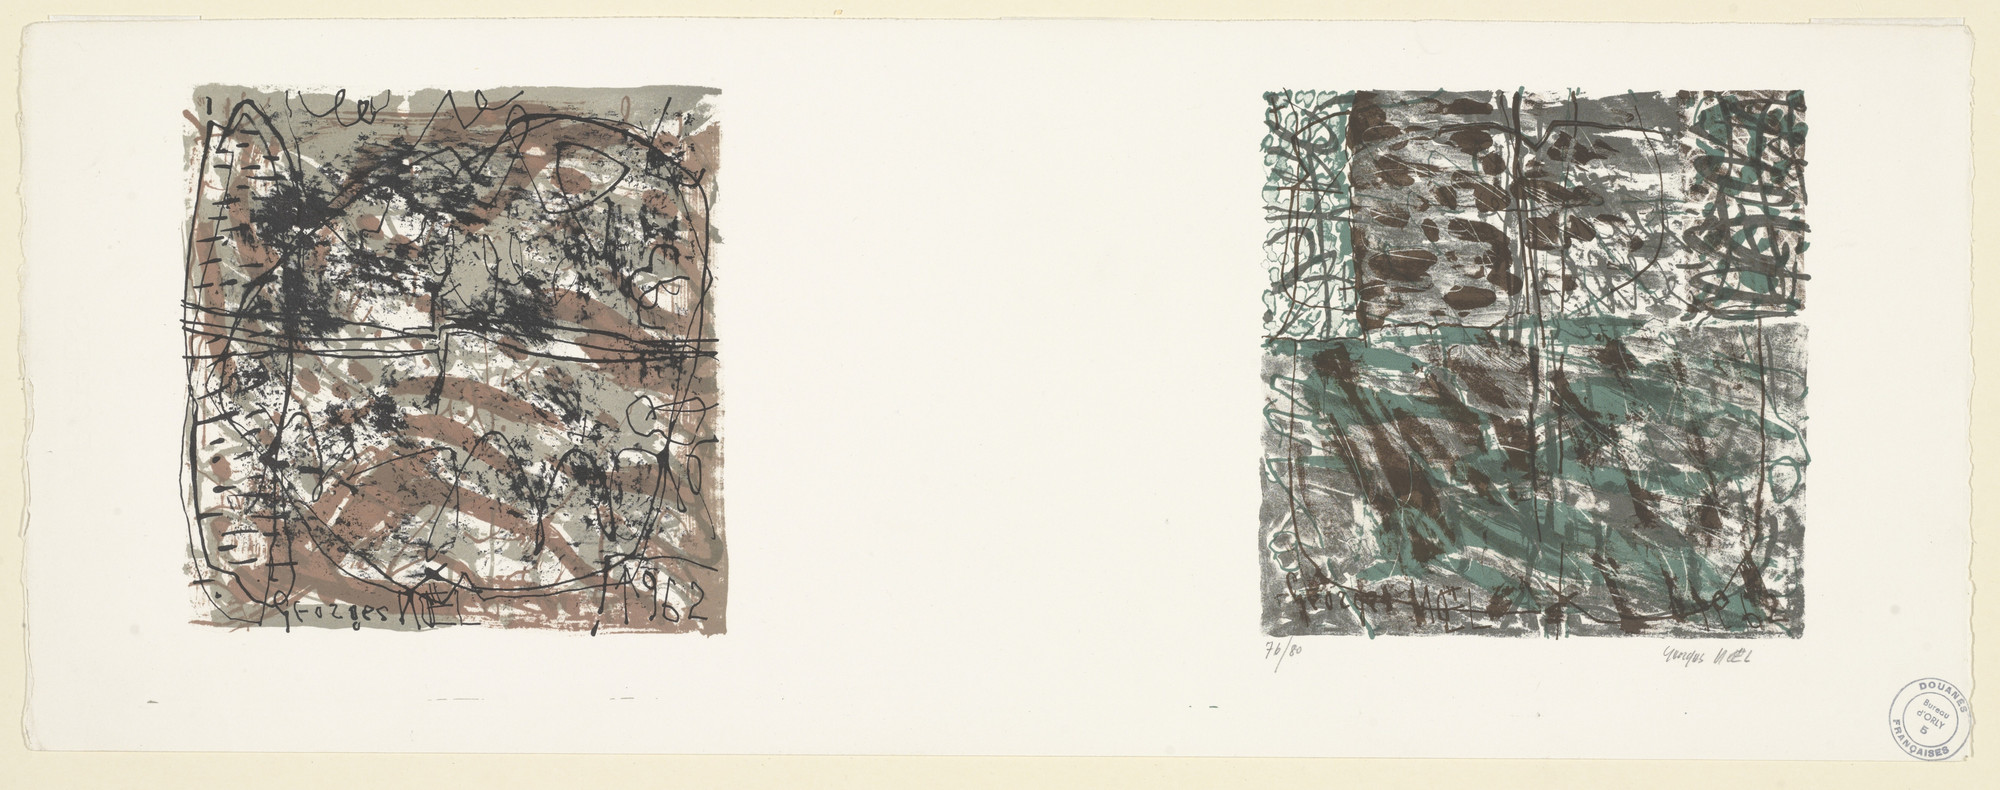 Georges Noël. Untitled. 1962